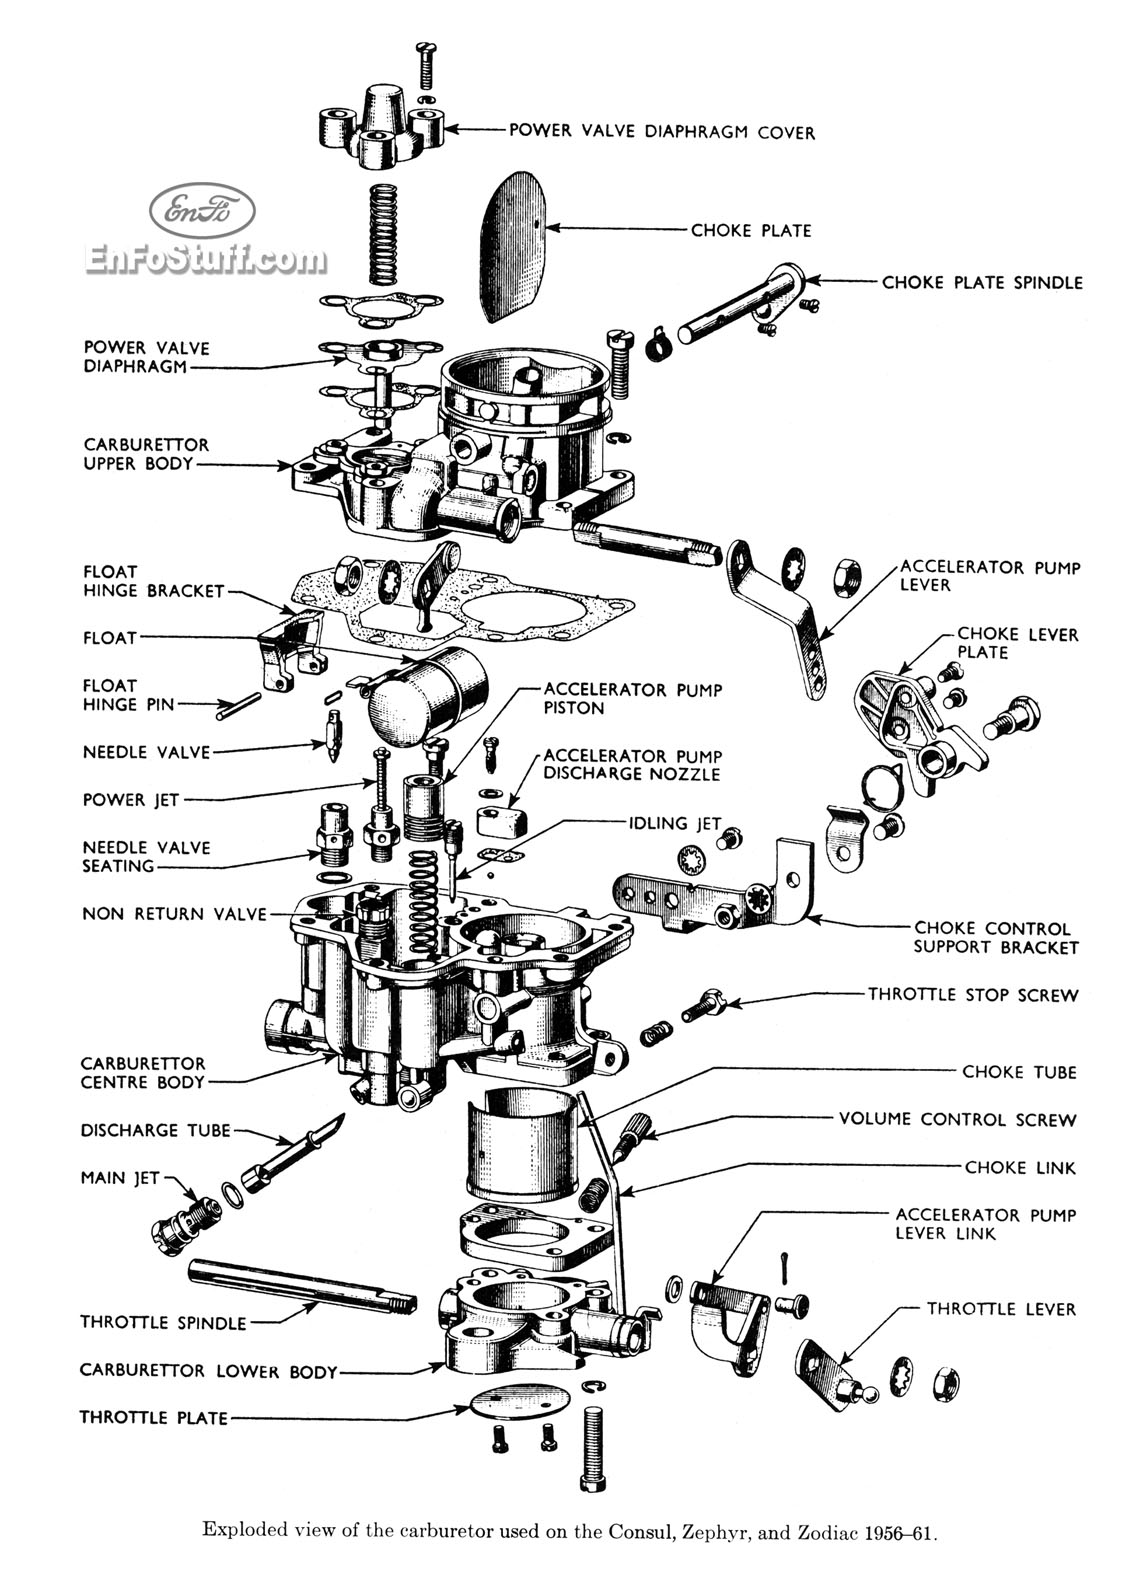 Carburetor Diagram For Ford Zephyr And Zodiac 61